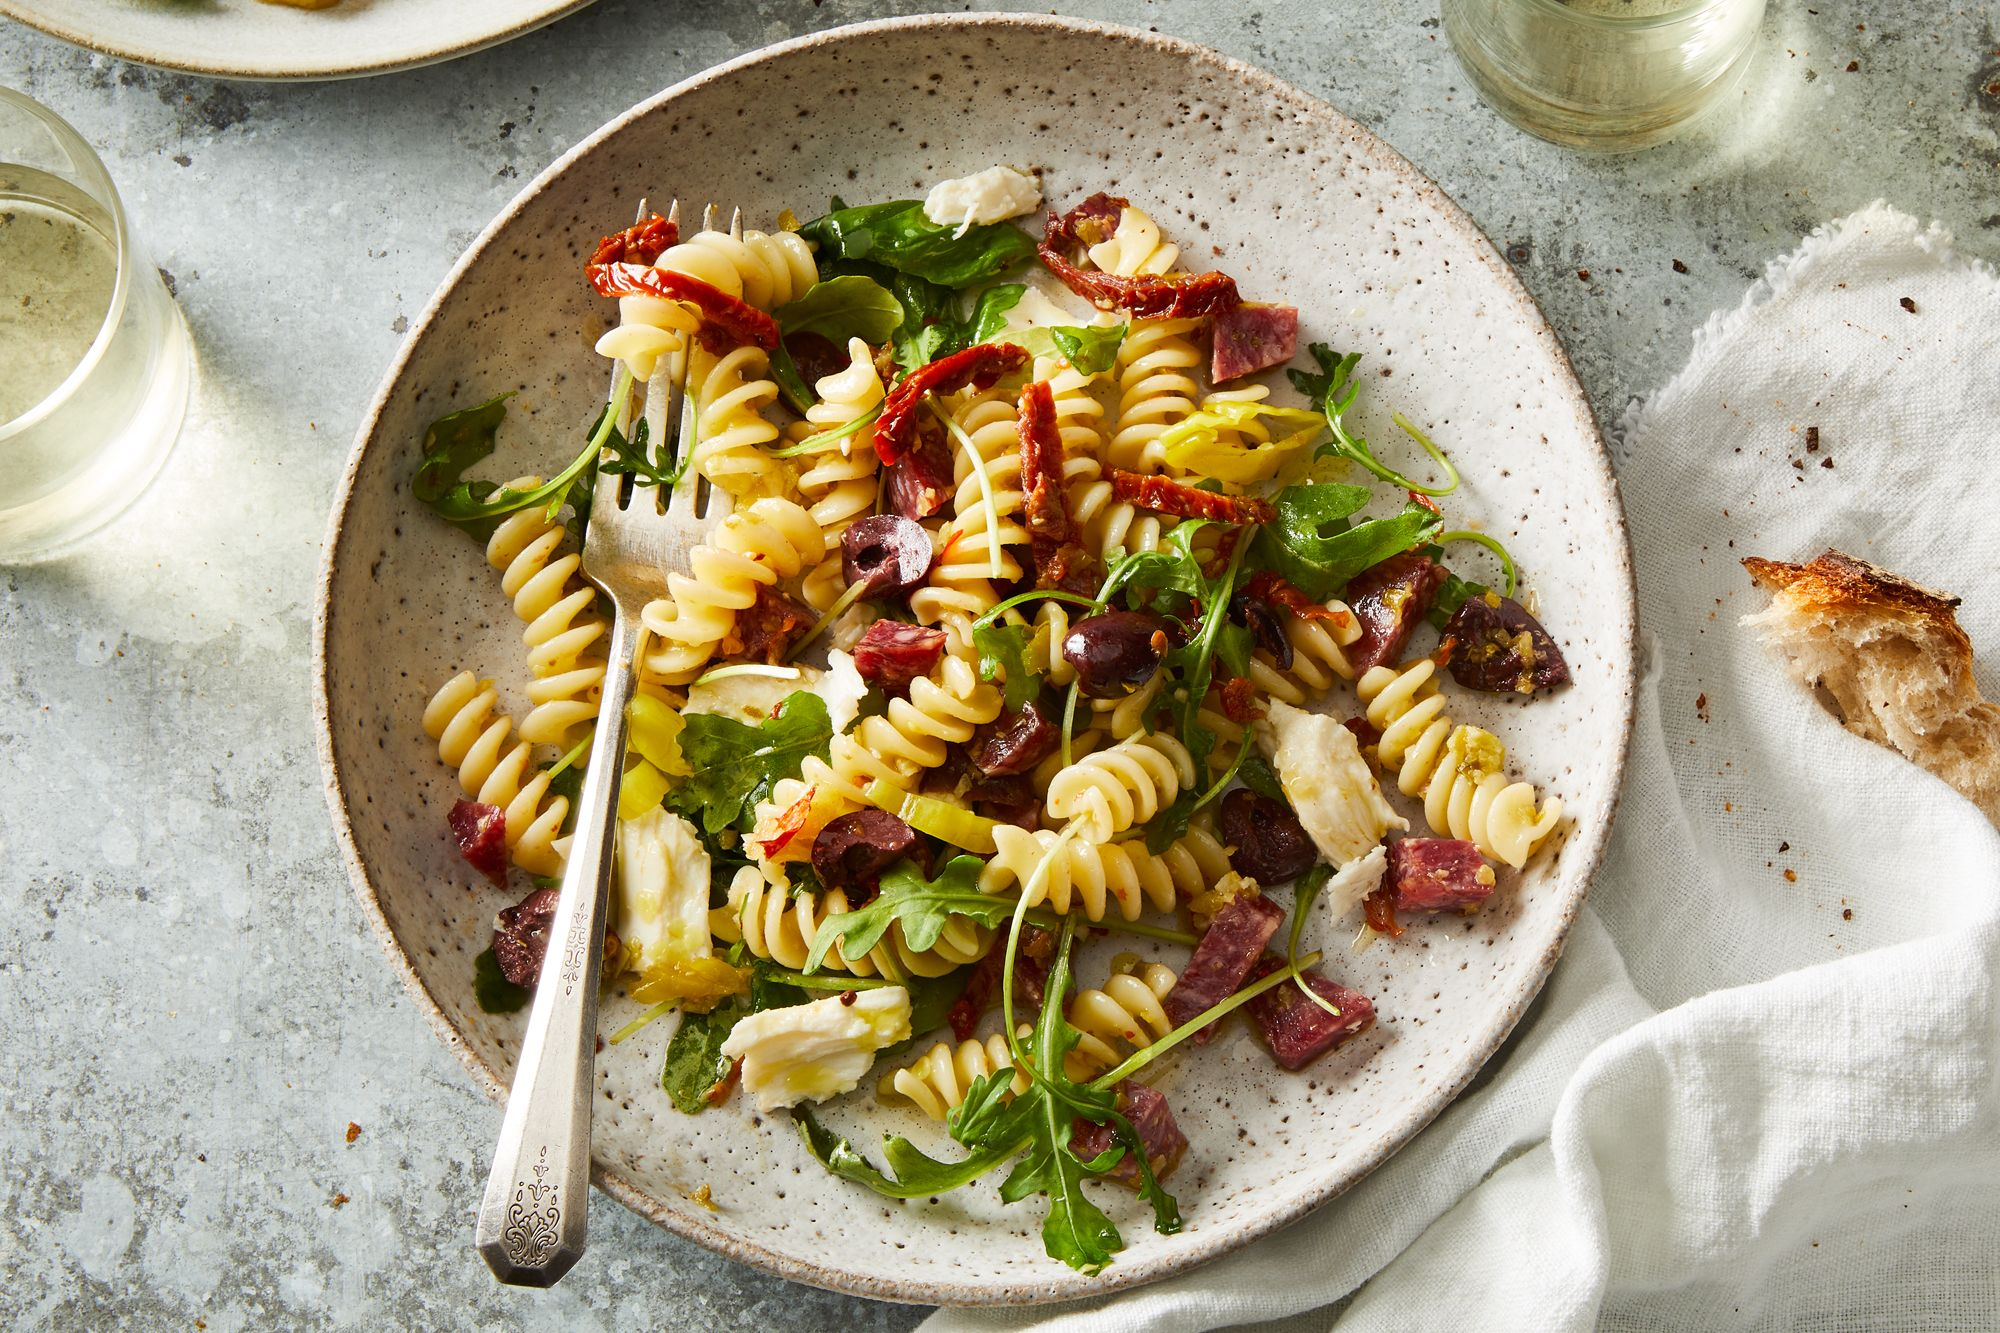 This Genius Italian Pasta Salad Breaks the #1 Rule in Pasta Cookery